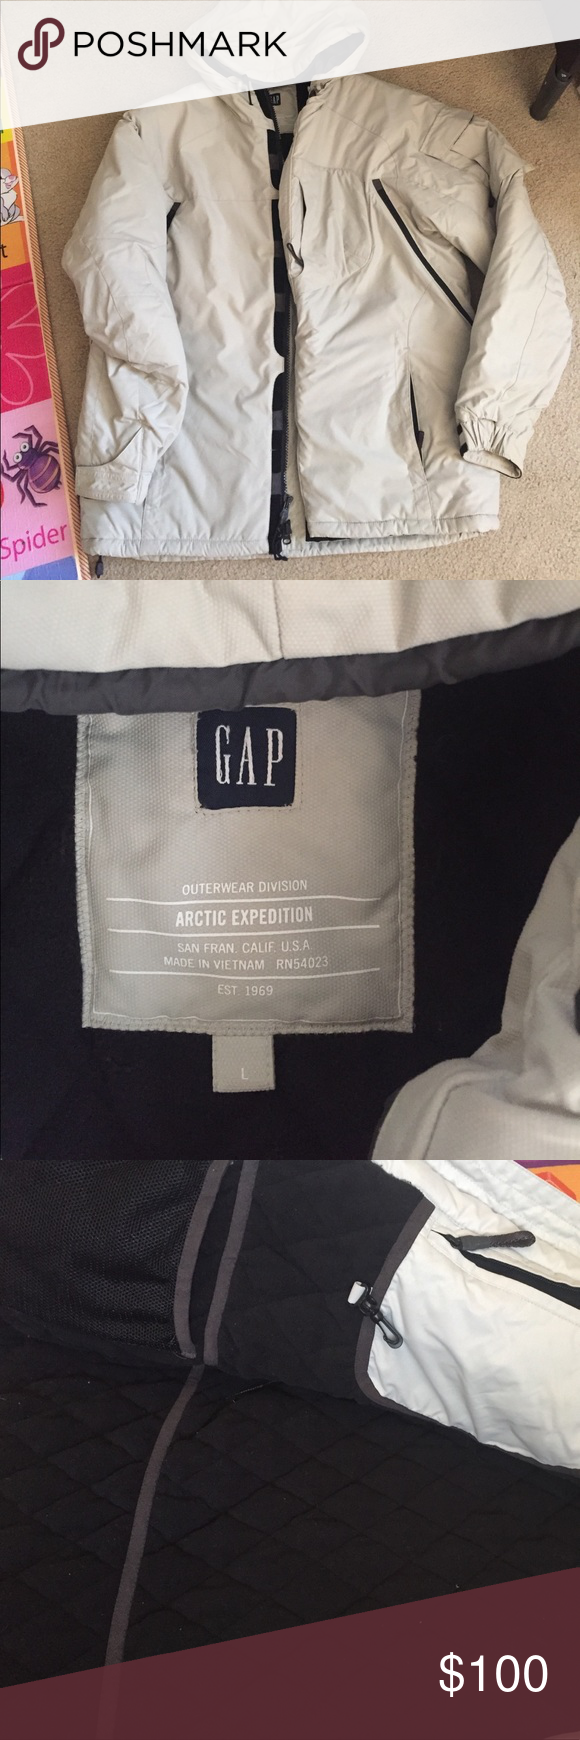 Gap Mens Arctic Expedition Outerwear Excellent Shape Small Spot On Zipper Area As Pictured Light Grey Tan Gap Jackets Outerwear Gap Jacket Snowboarding Coats [ 1740 x 580 Pixel ]